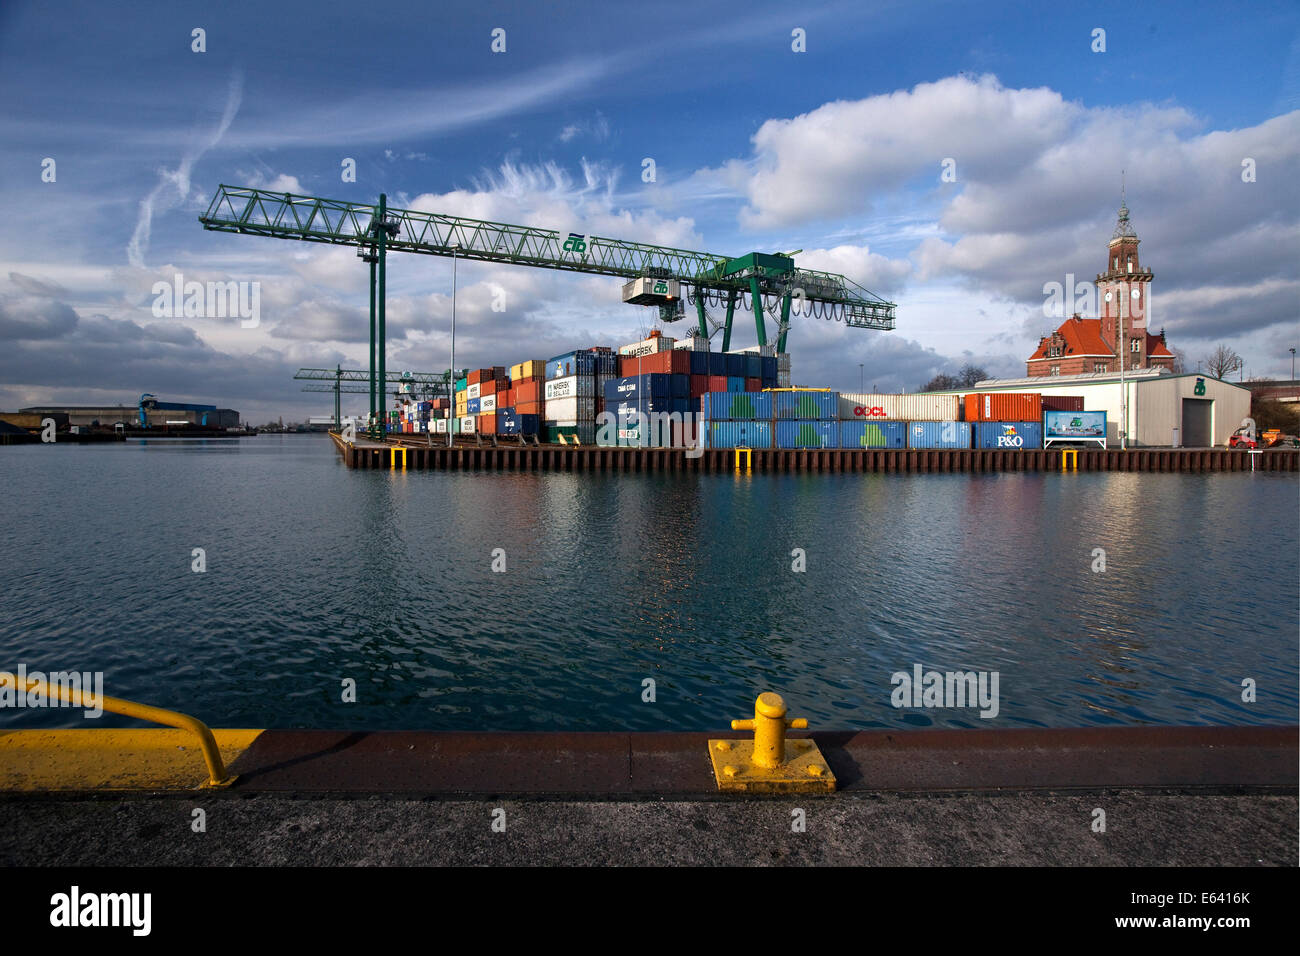 Dortmund harbor with the old Port Authority, Dortmund, Ruhr district, North Rhine-Westphalia, Germany - Stock Image